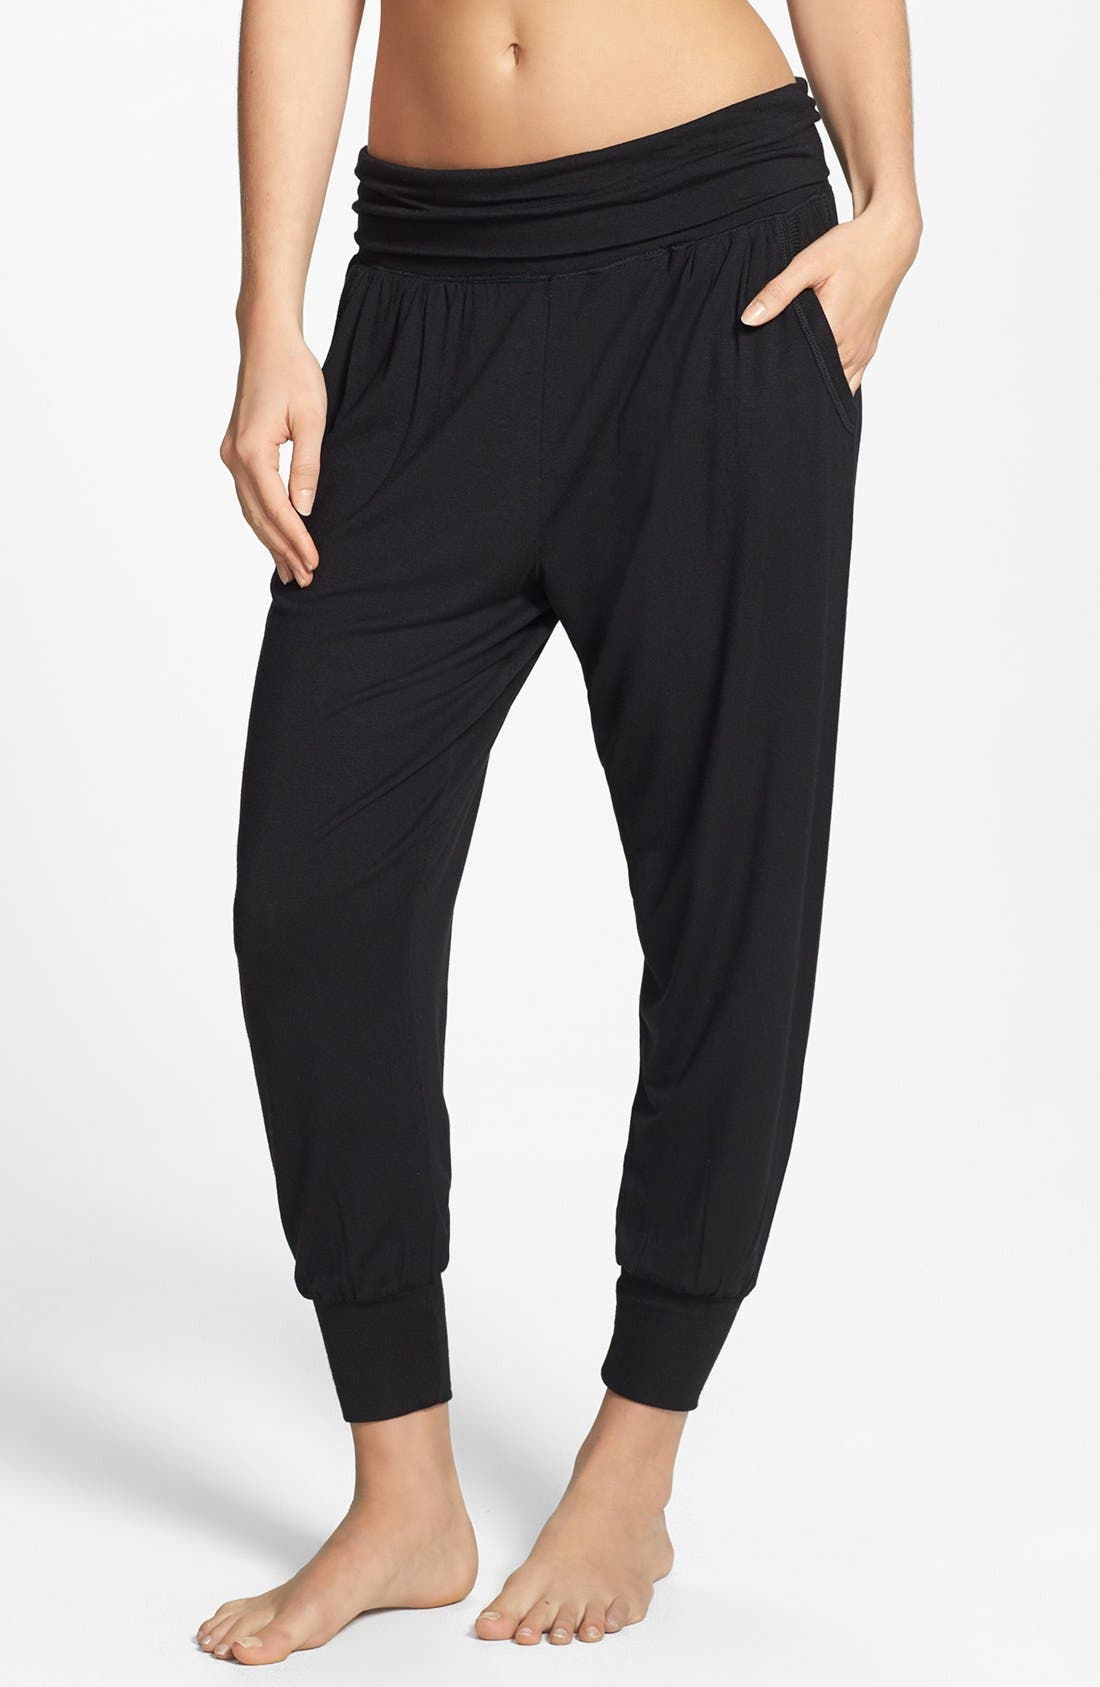 Alternate Image 1 Selected - DKNY 'City Essentials' Capris